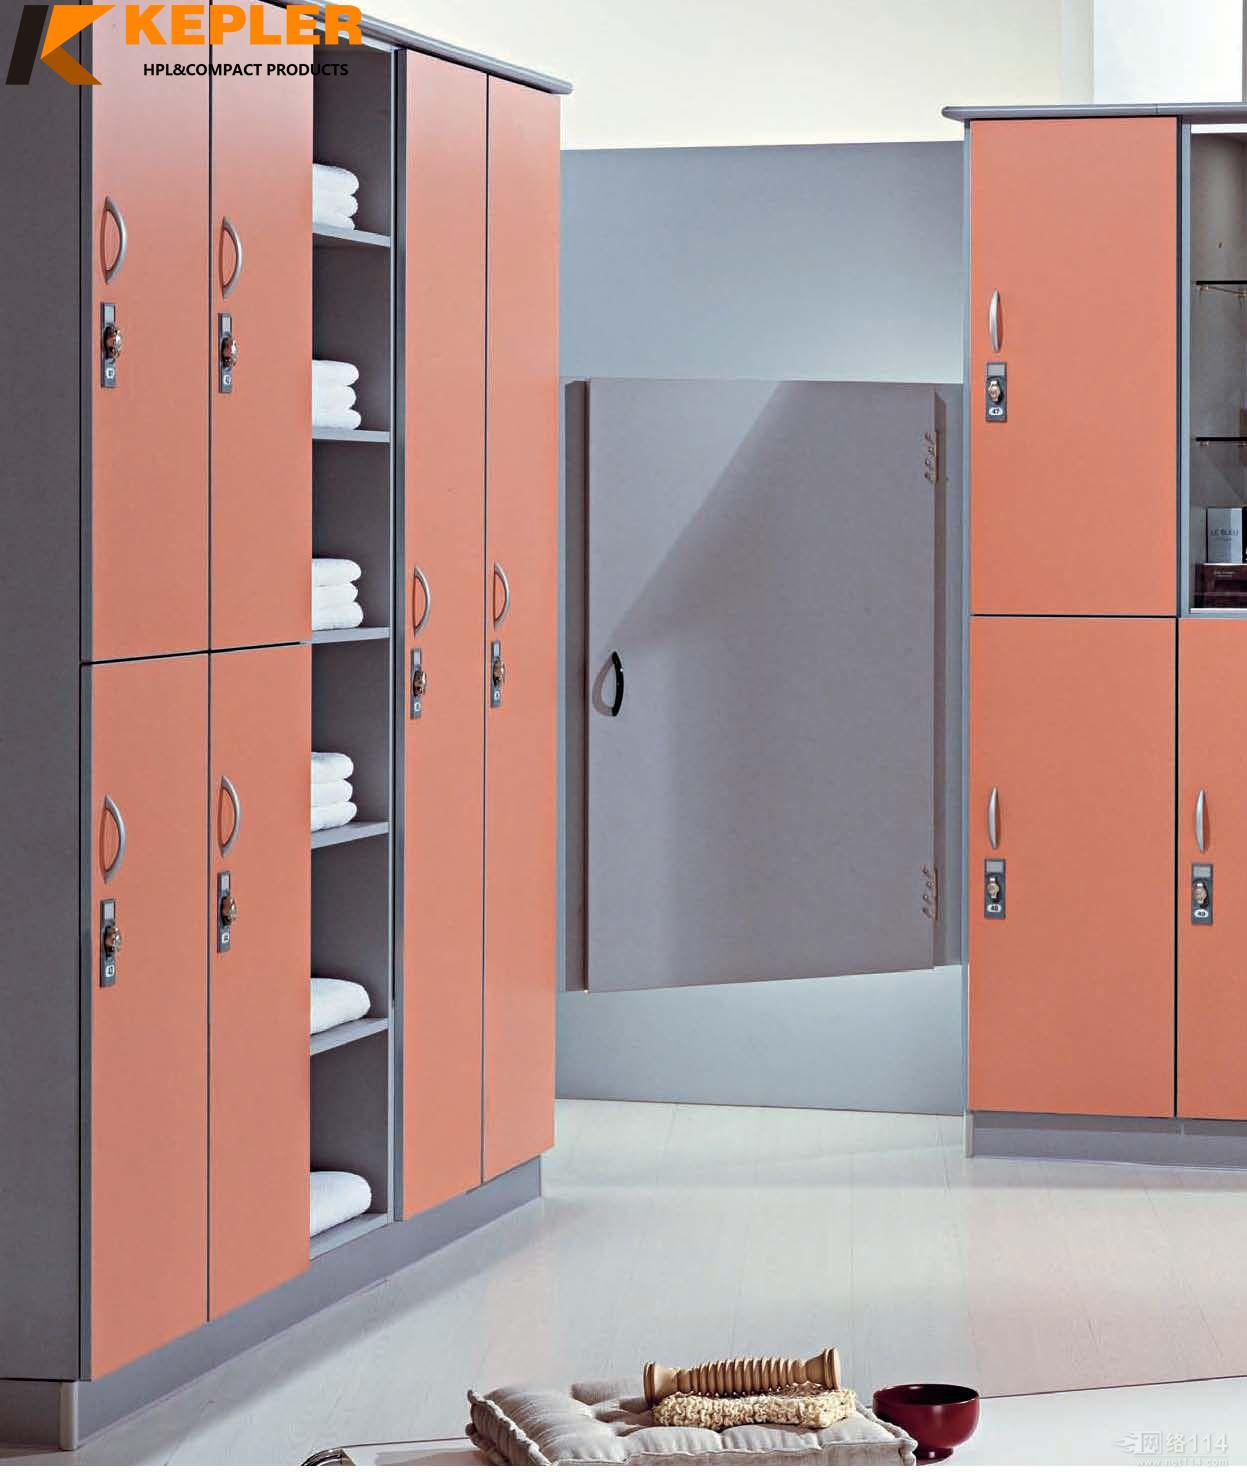 Kepler new design economic high quality phenolic compact laminate school locker cabinet for sale